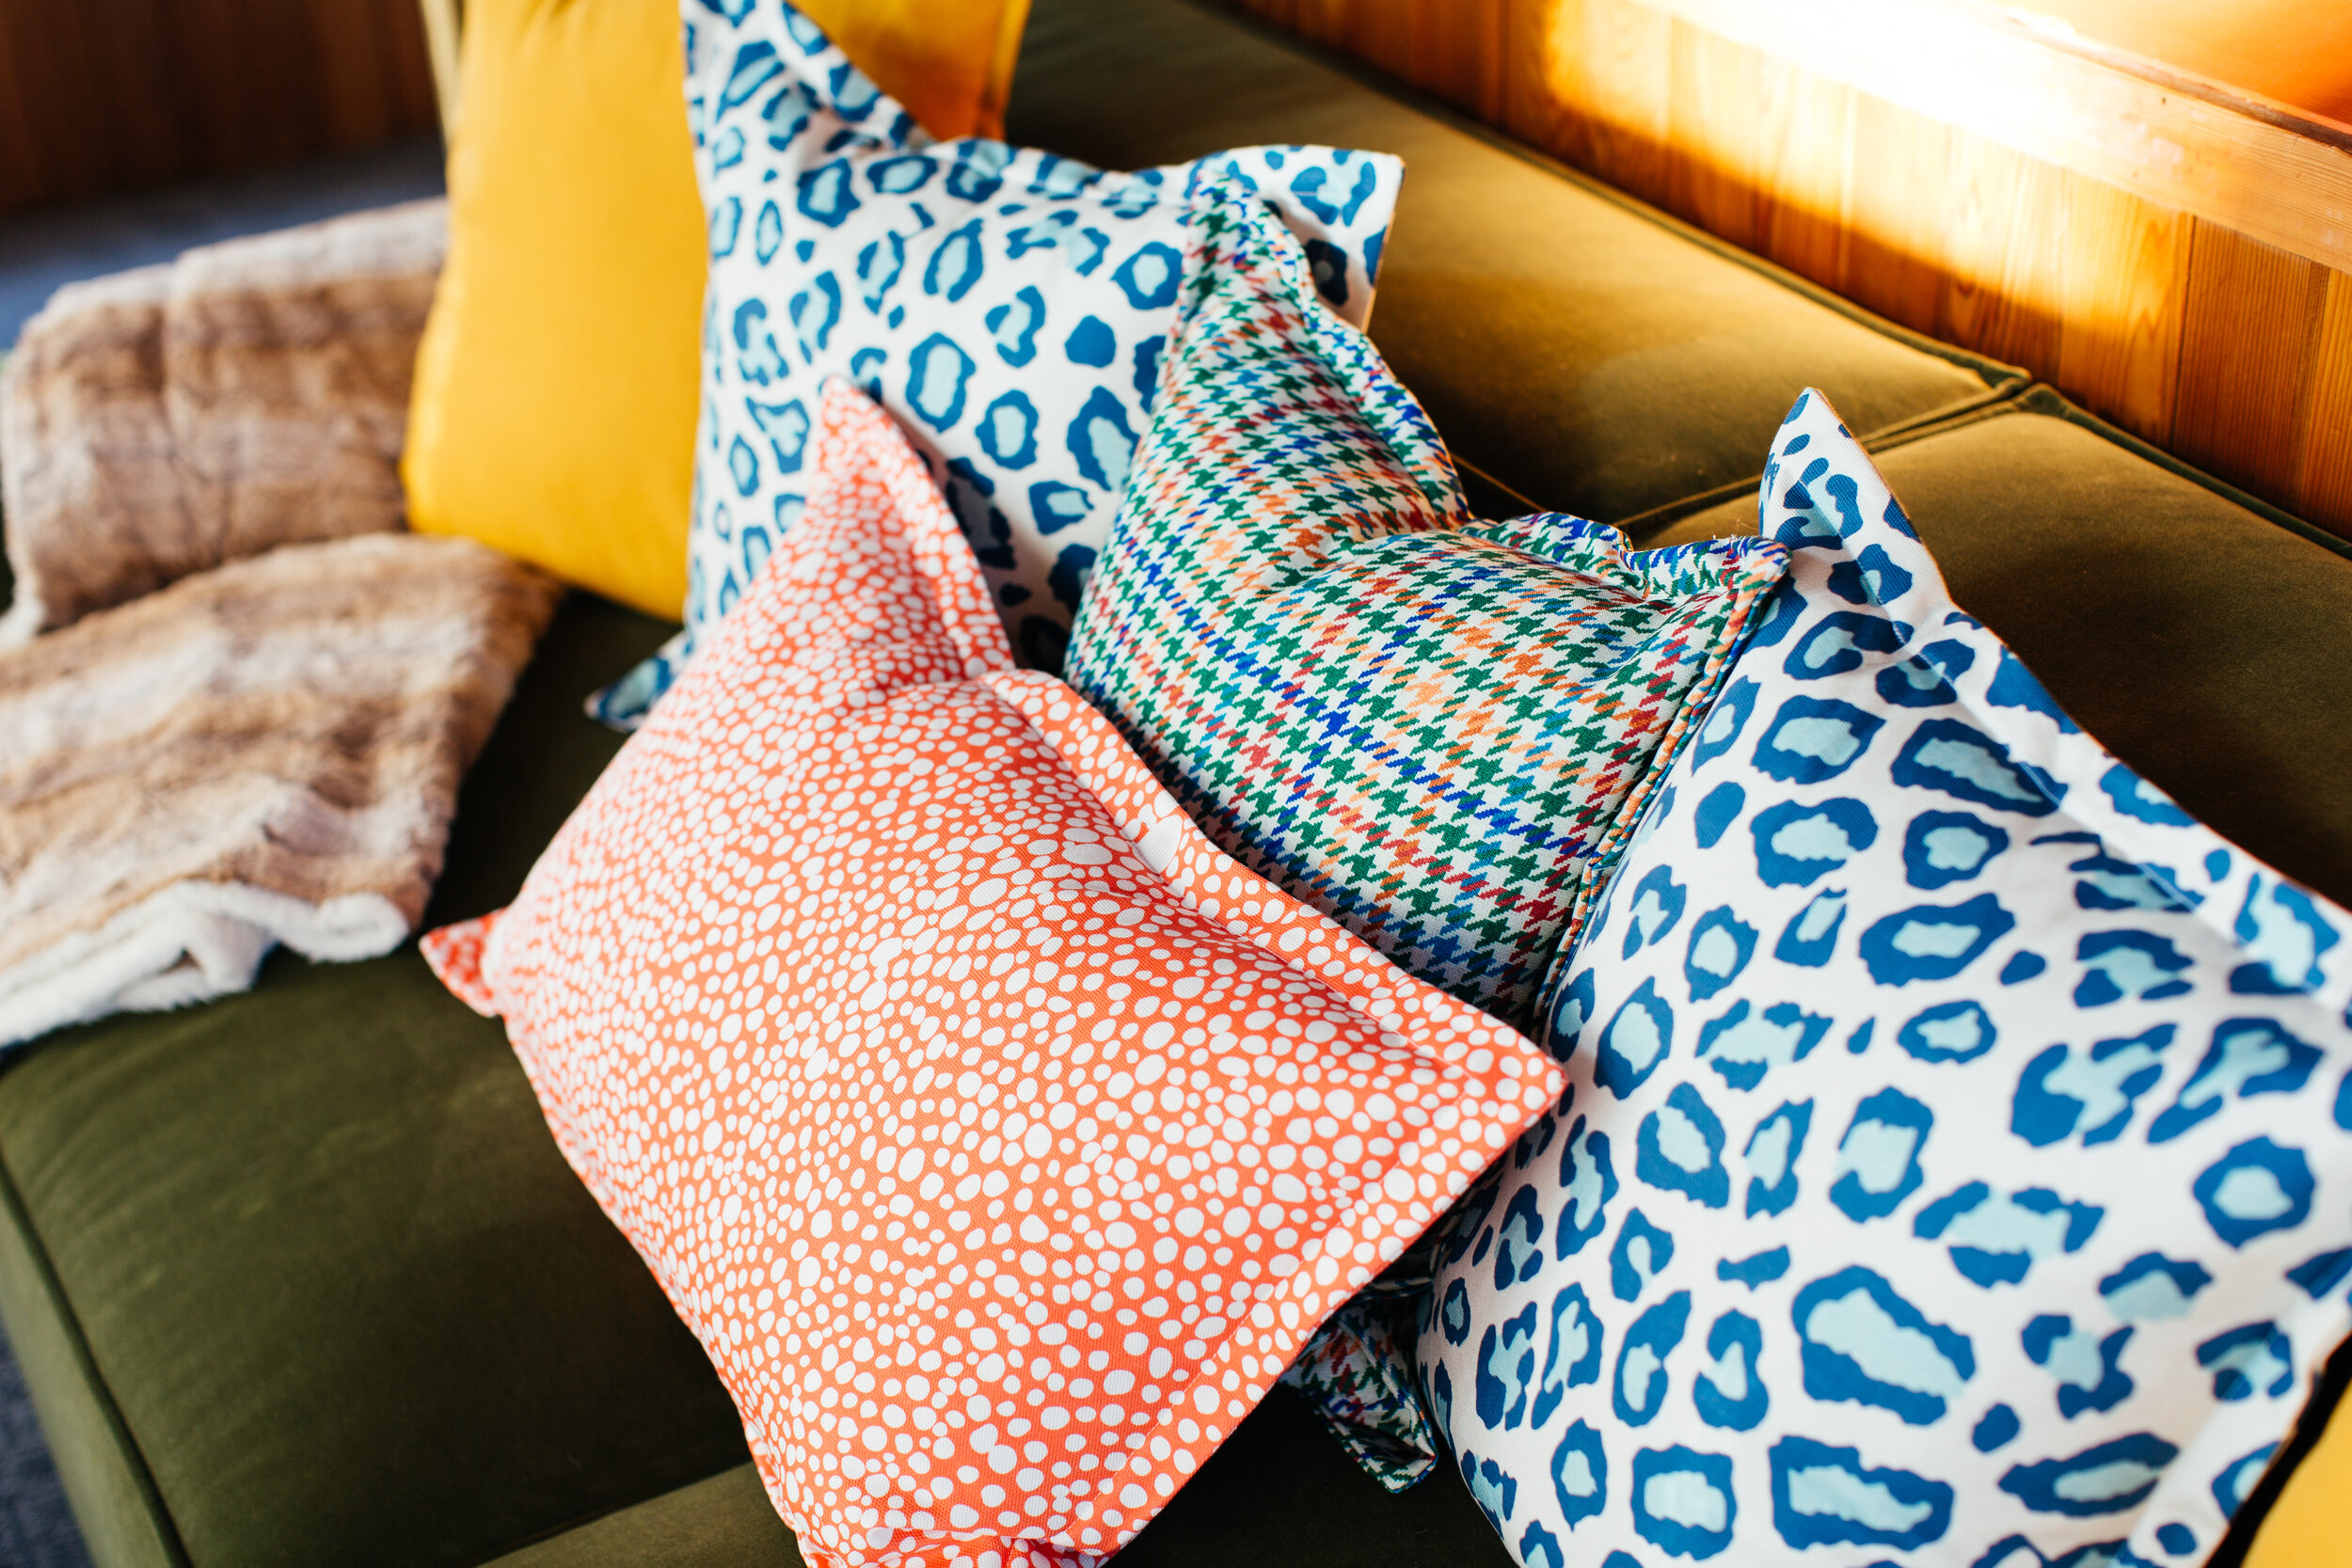 ORC spoonflower pillows in sunroom designed by TheRathProject.jpg